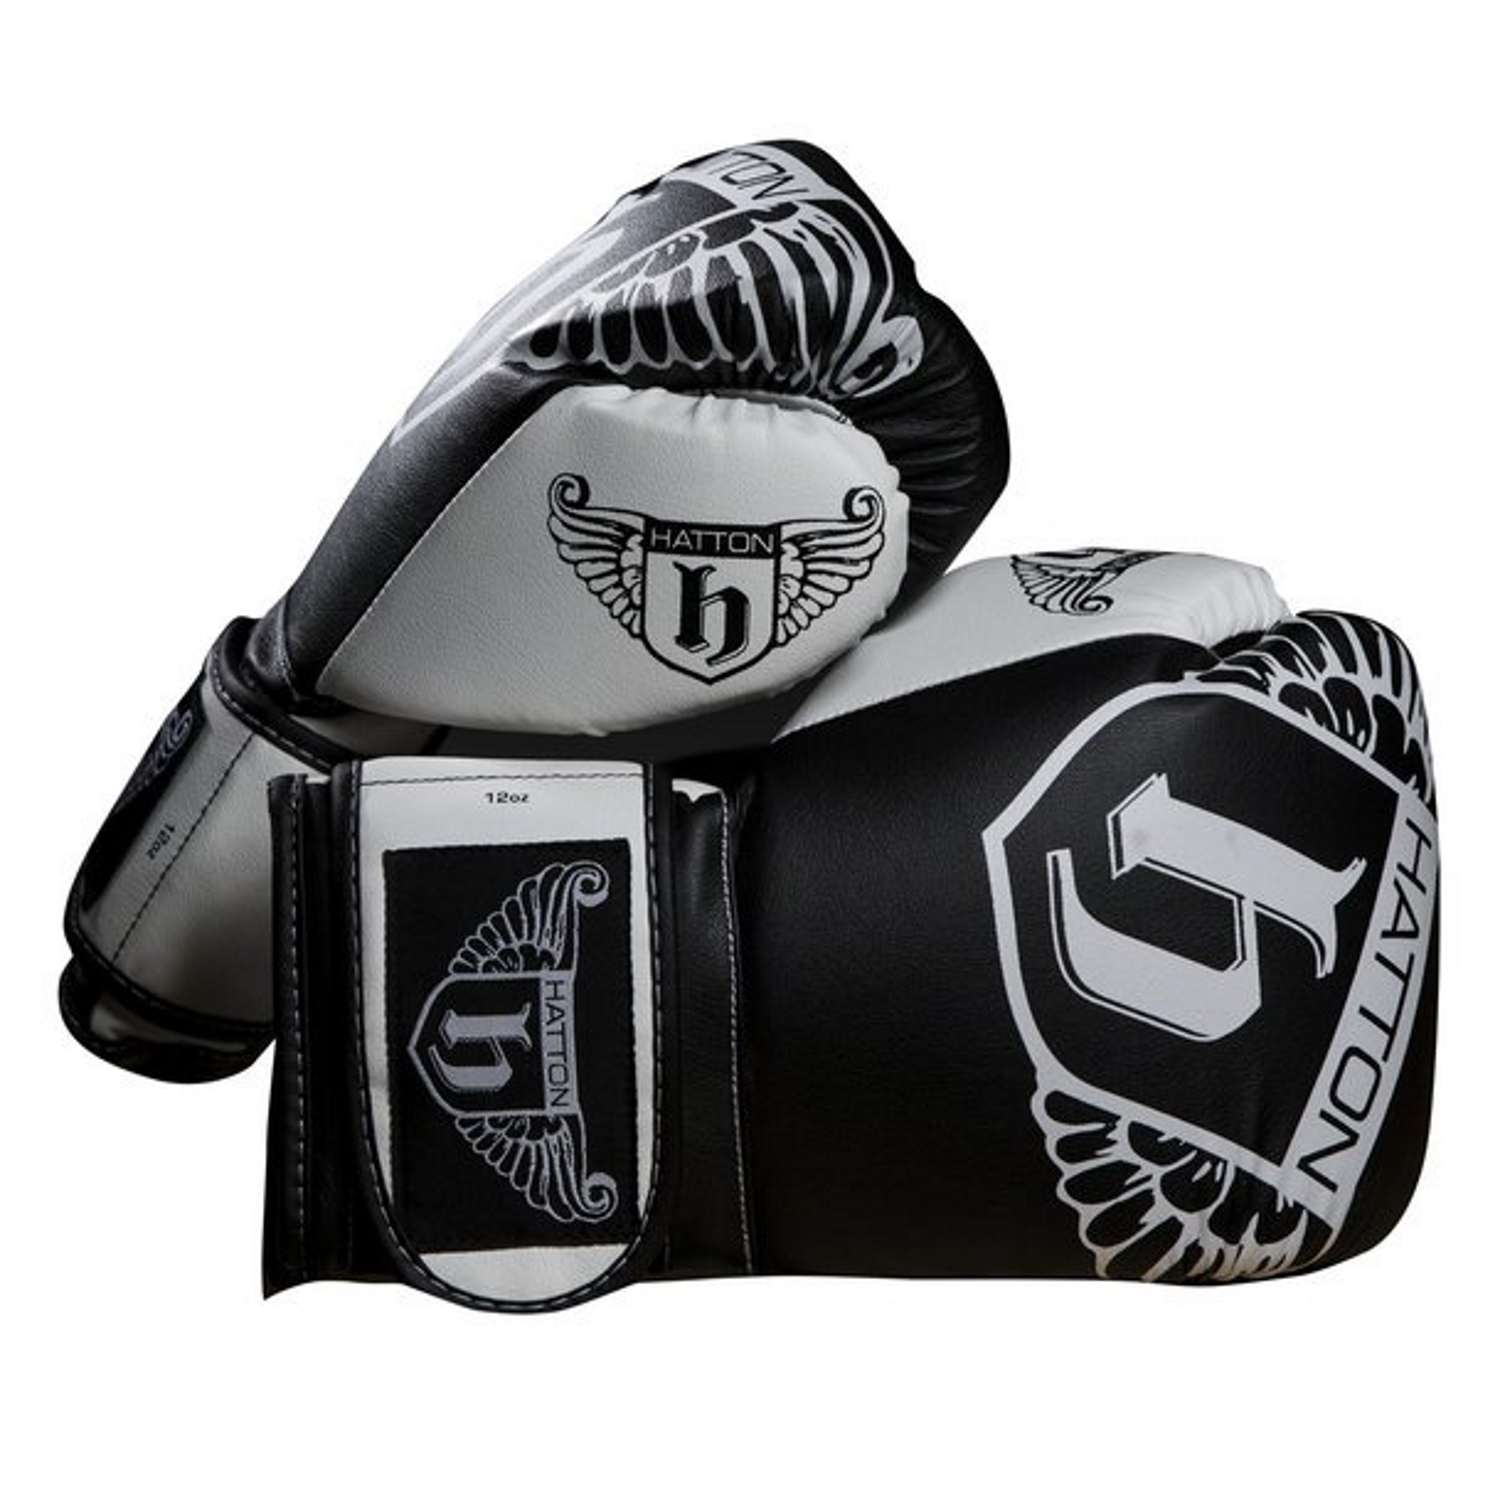 Hatton PU Boxing Gloves - 12oz